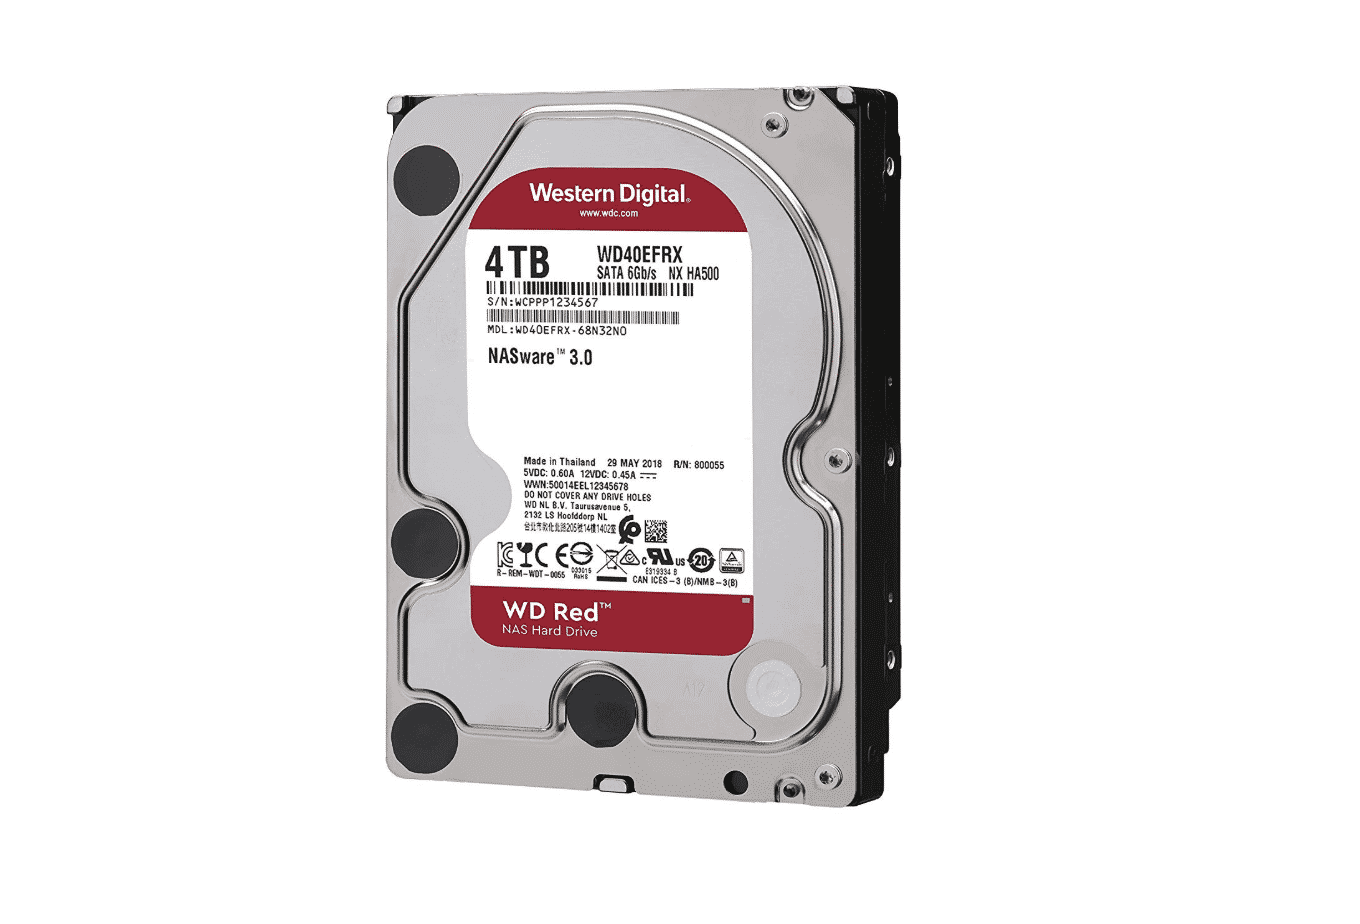 This is the WD Red 4TB NAS Hard Drive.